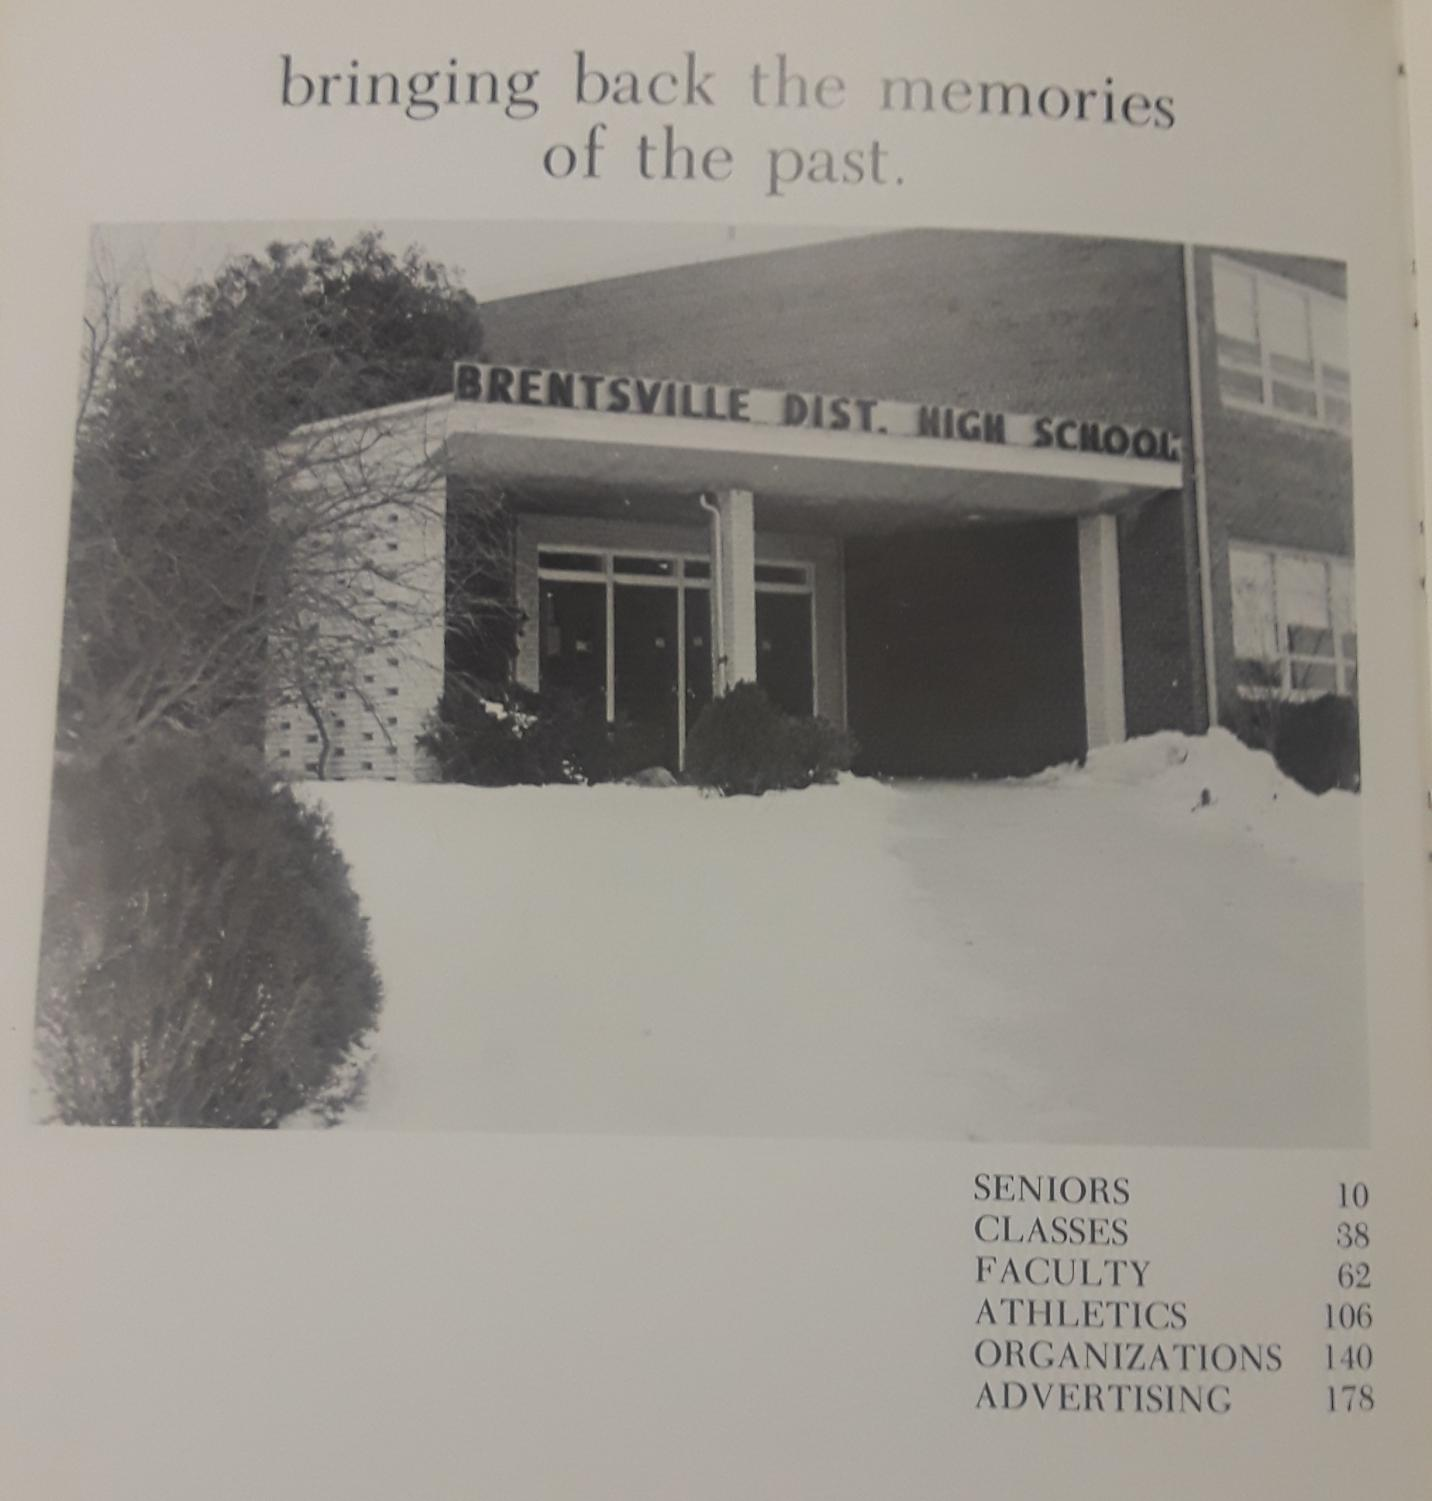 This is BDHS from the 1970s.